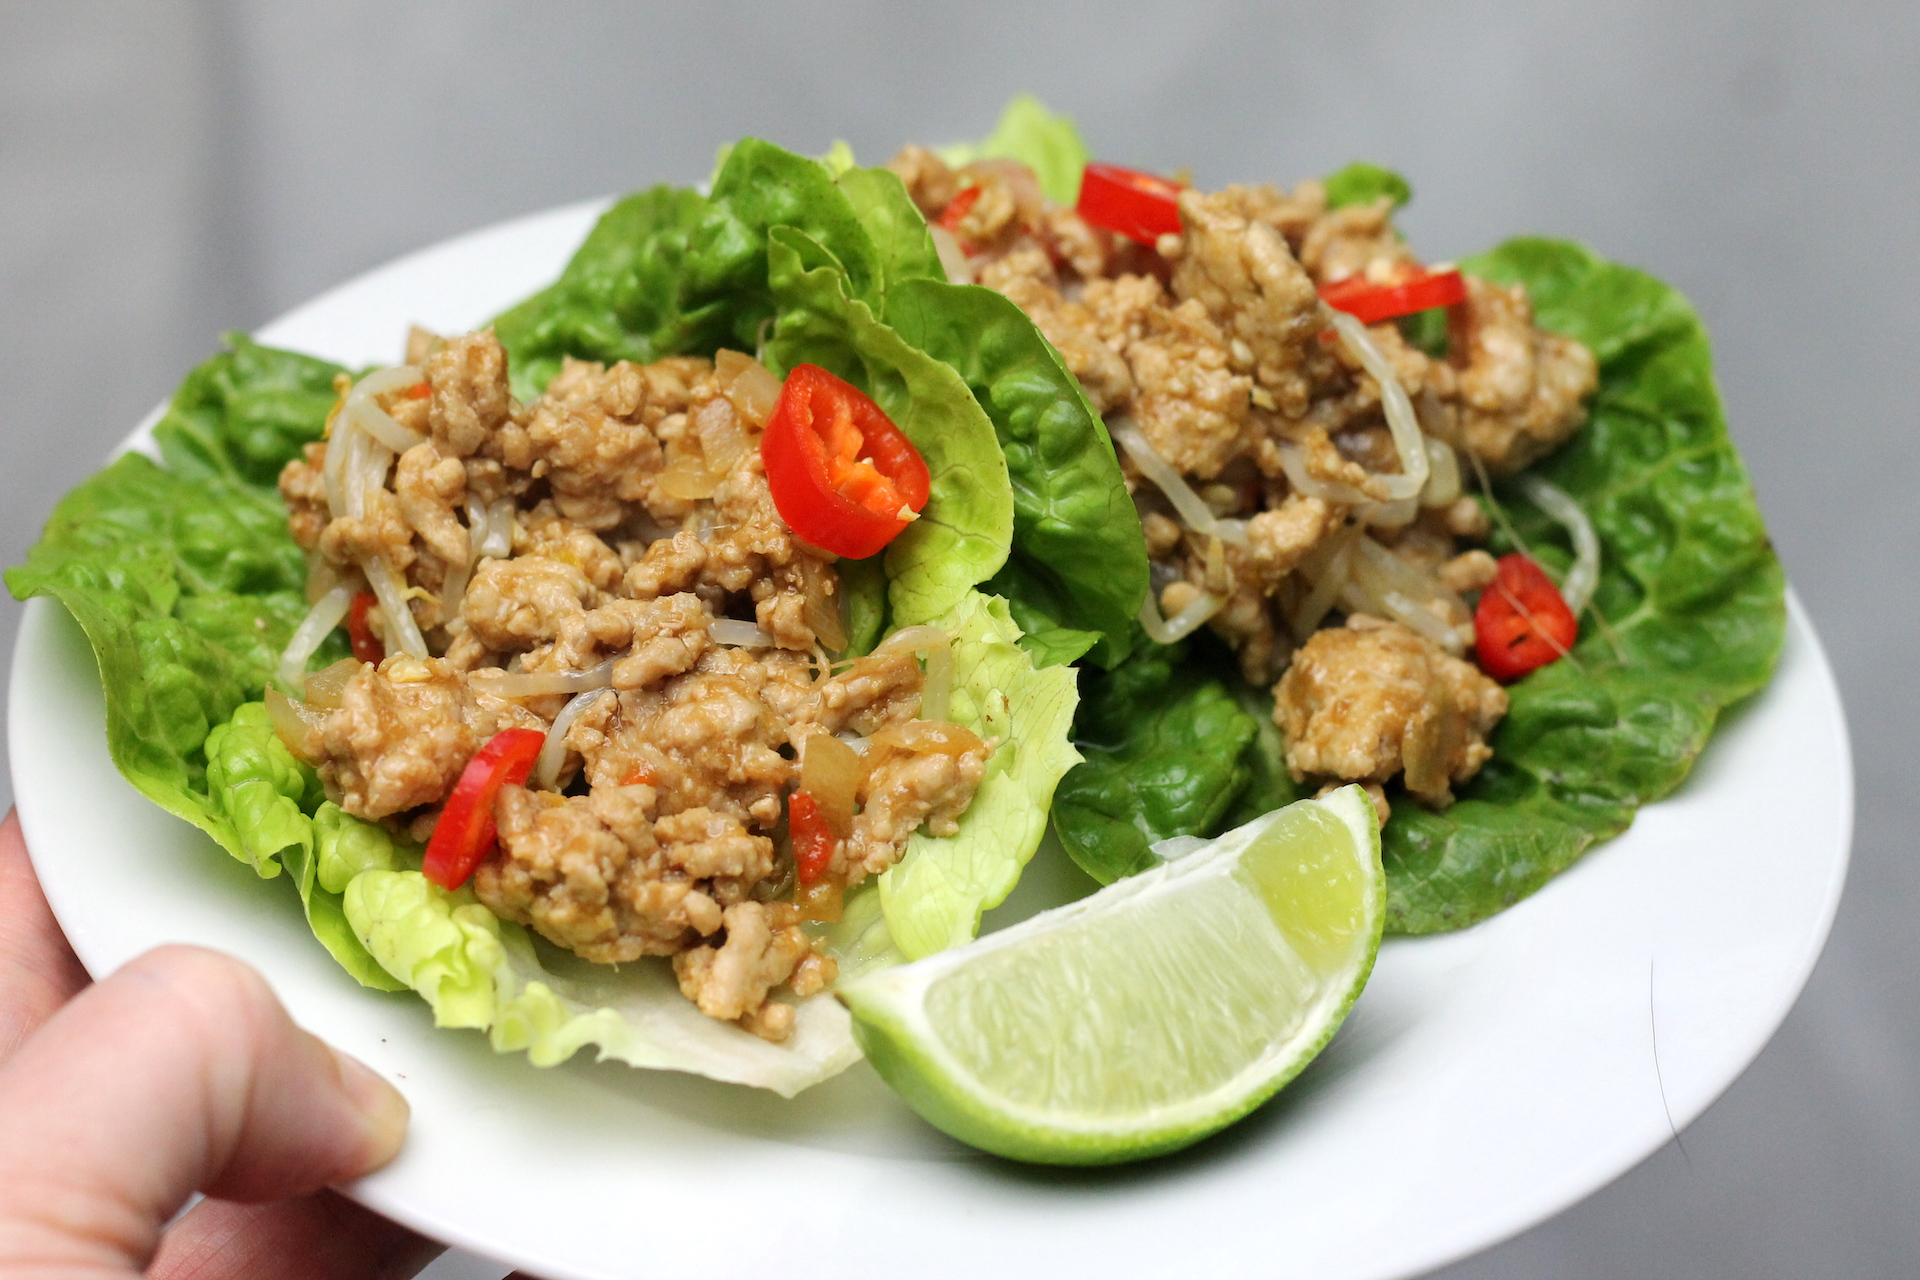 Keto San Choy Bow is one of those easy Keto recipes you need in your list for simple keto weeknight dinners! Simple but with LOTS of flavour, save the recipe to your meal plan for this week